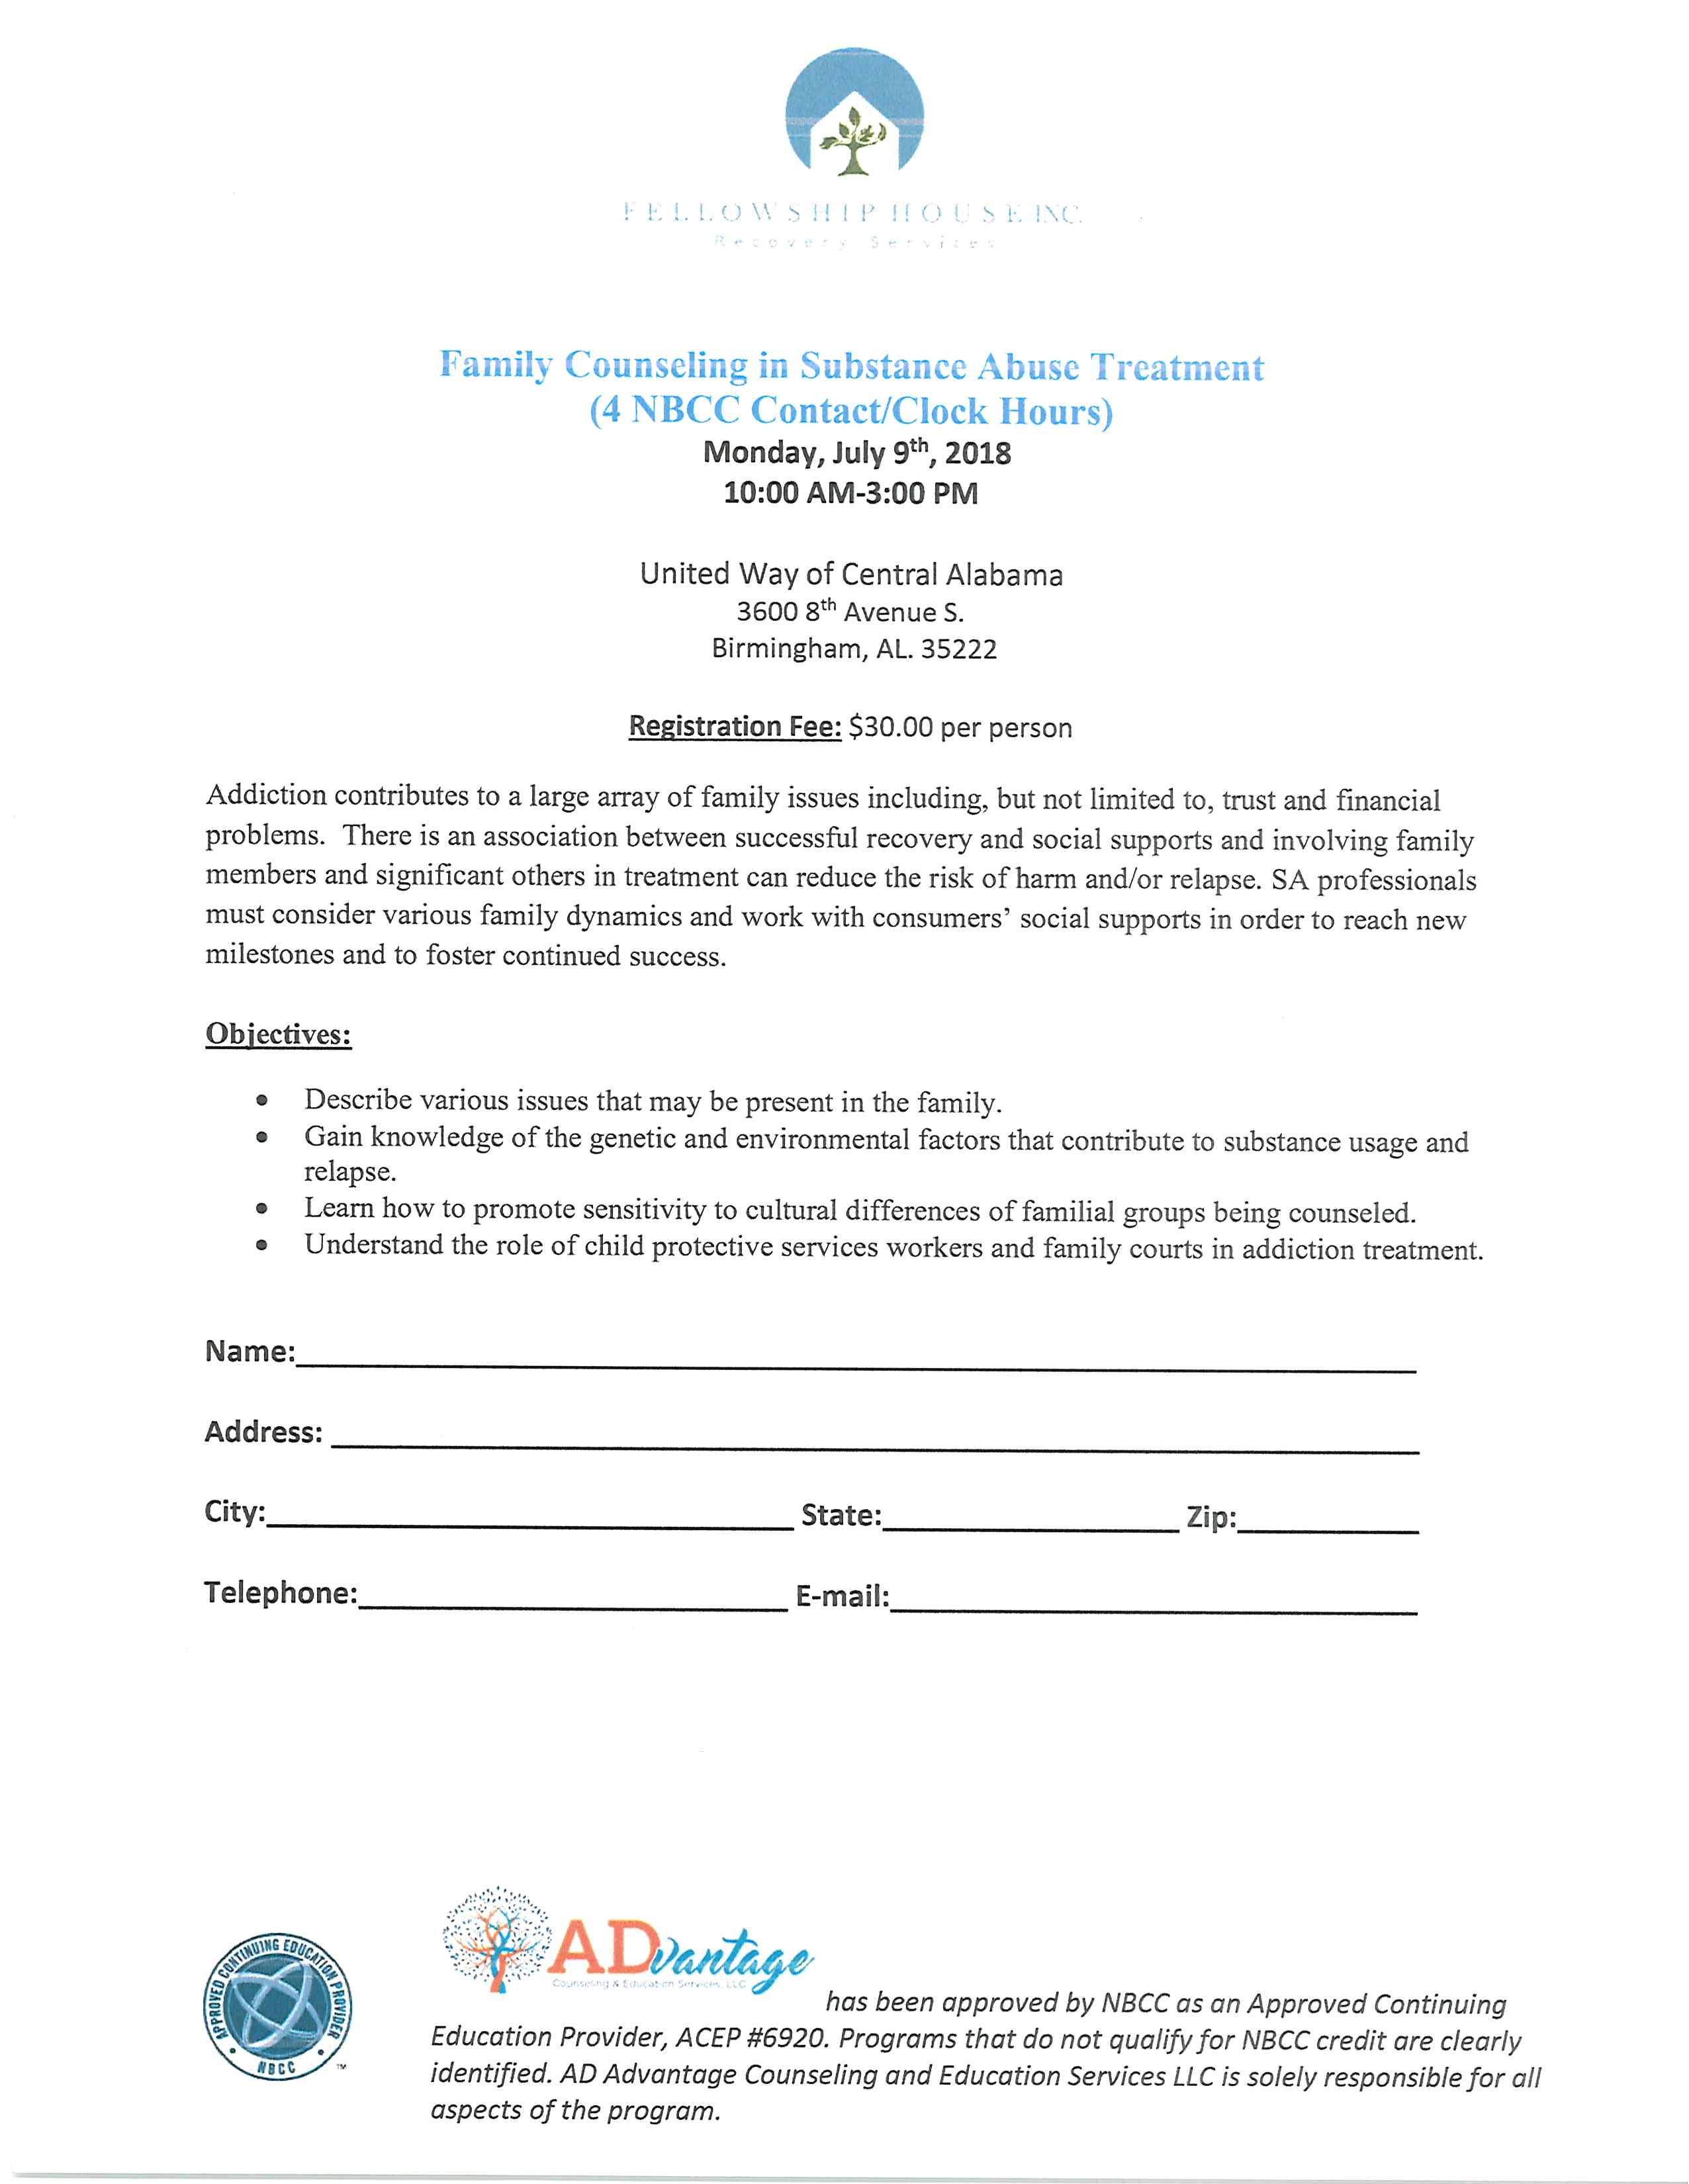 Family Counseling in Substance Abuse Treatment (4 NBCC Contact/Clock Hours)